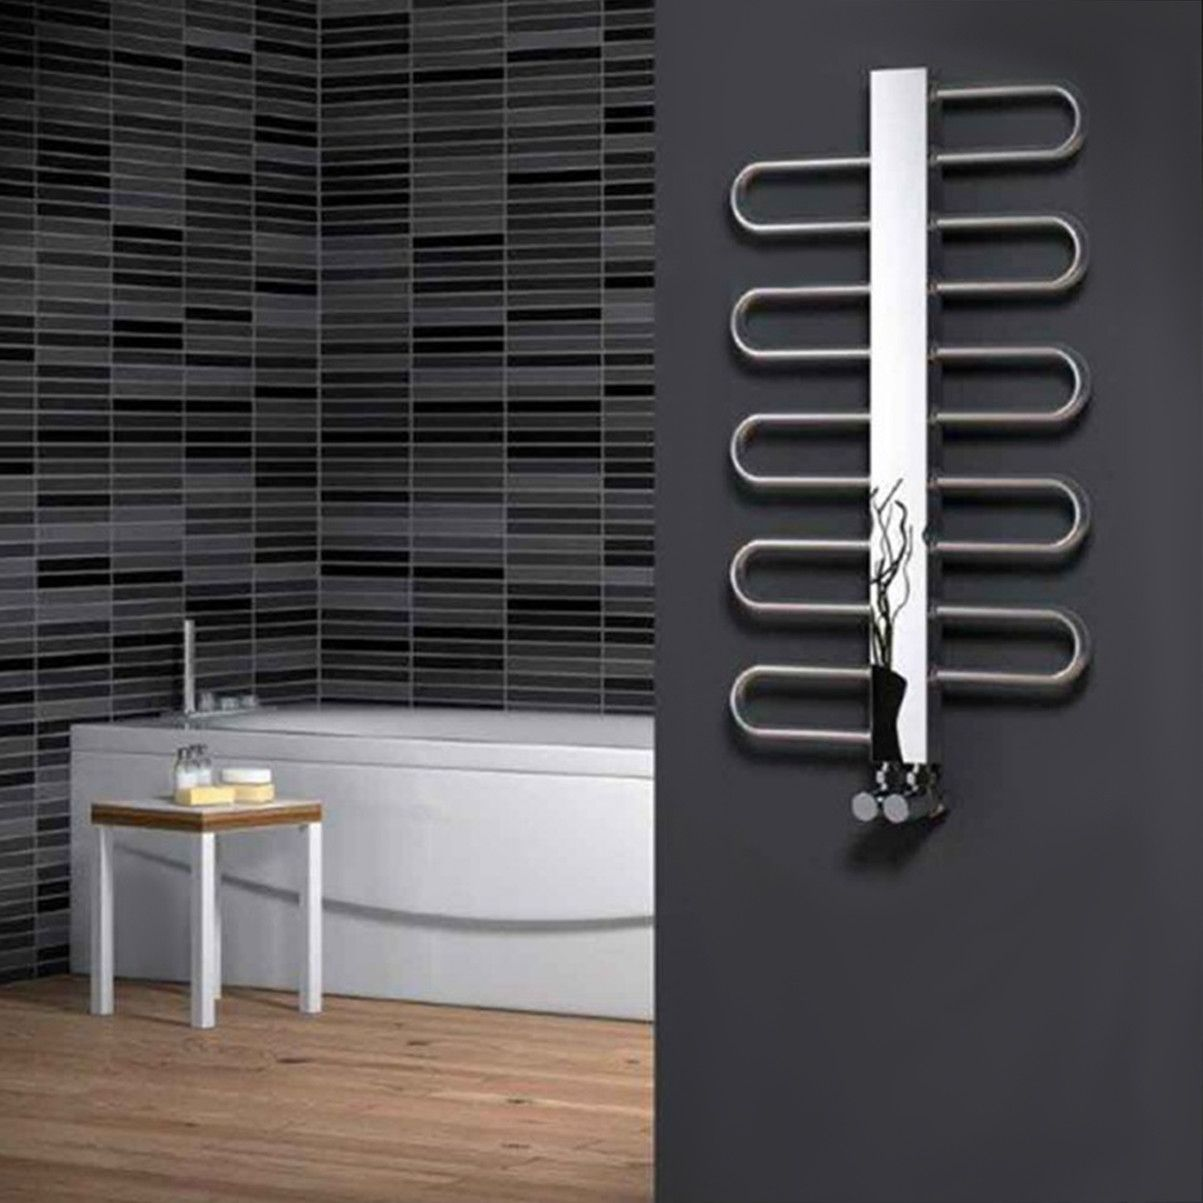 The Reina Dynamic Heated Towel Rail boasts